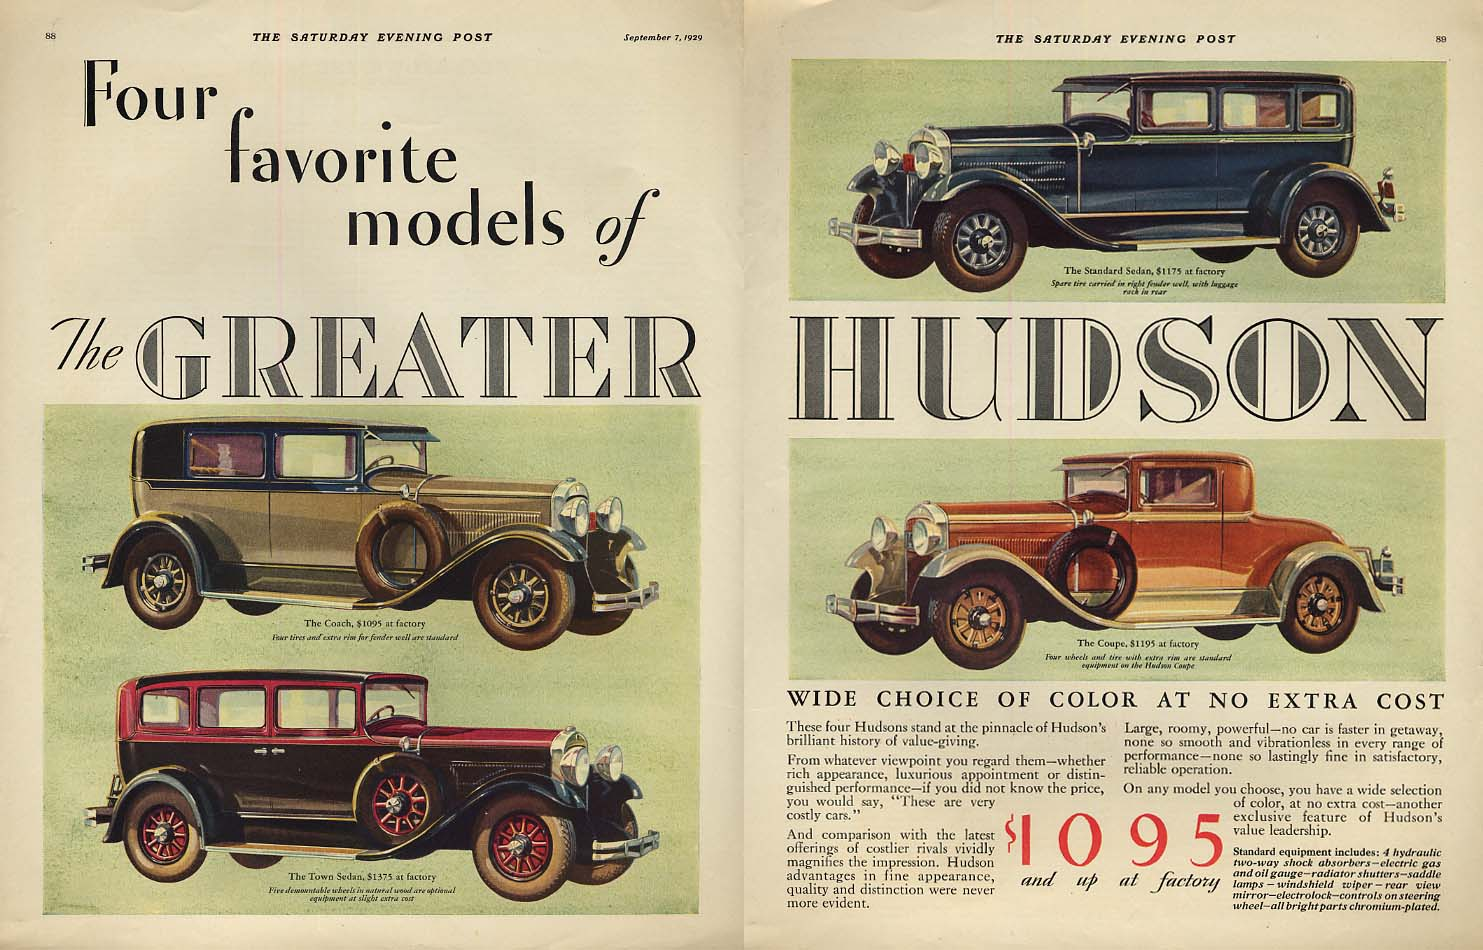 4 Favorite models Greater Hudson Coach Town Sedan Coupe ad 1930 SEP